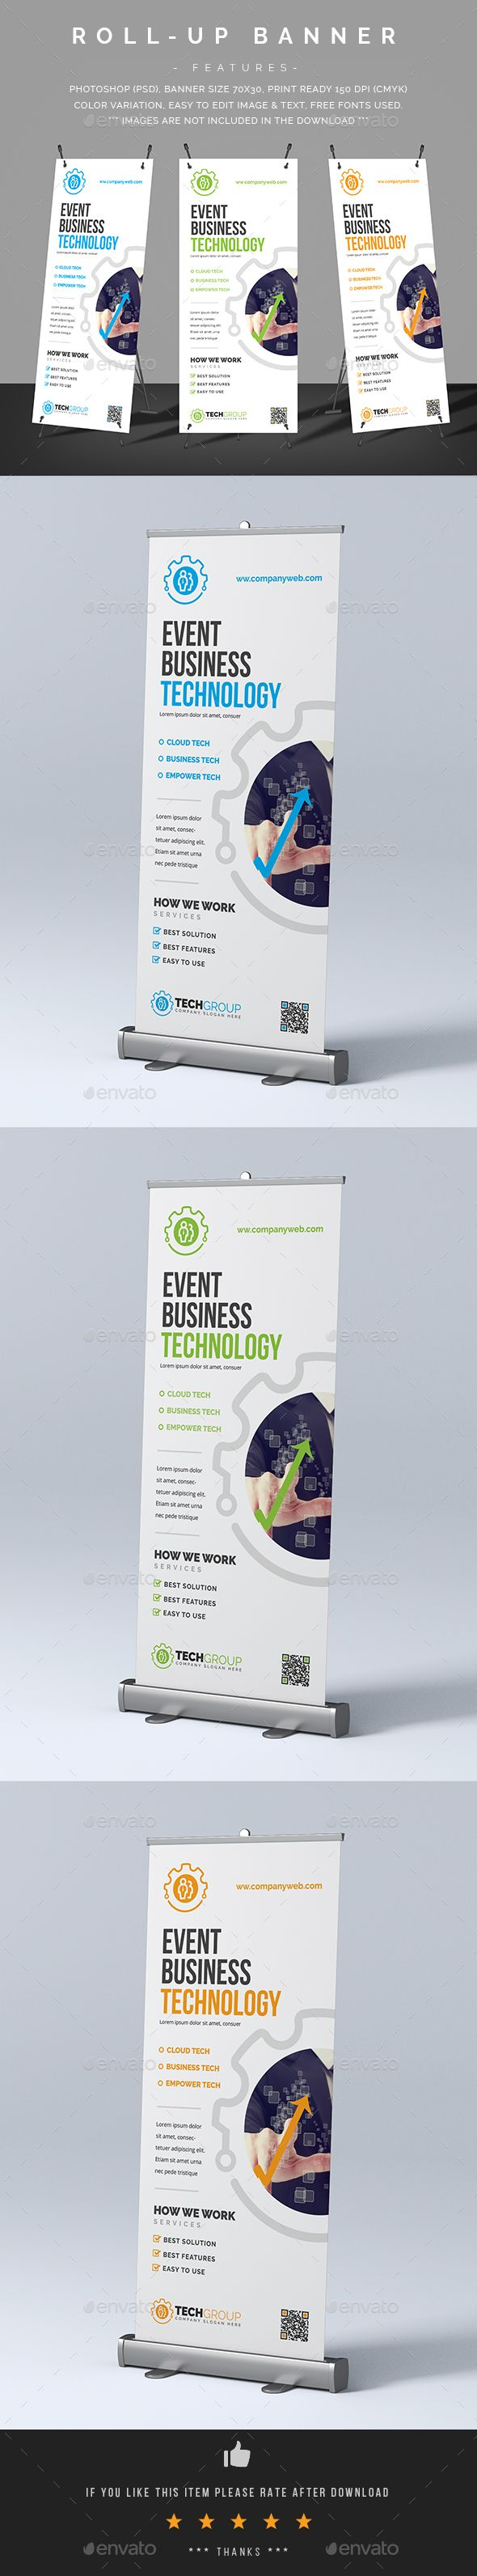 Tech Roll-Up Banner Template PSD